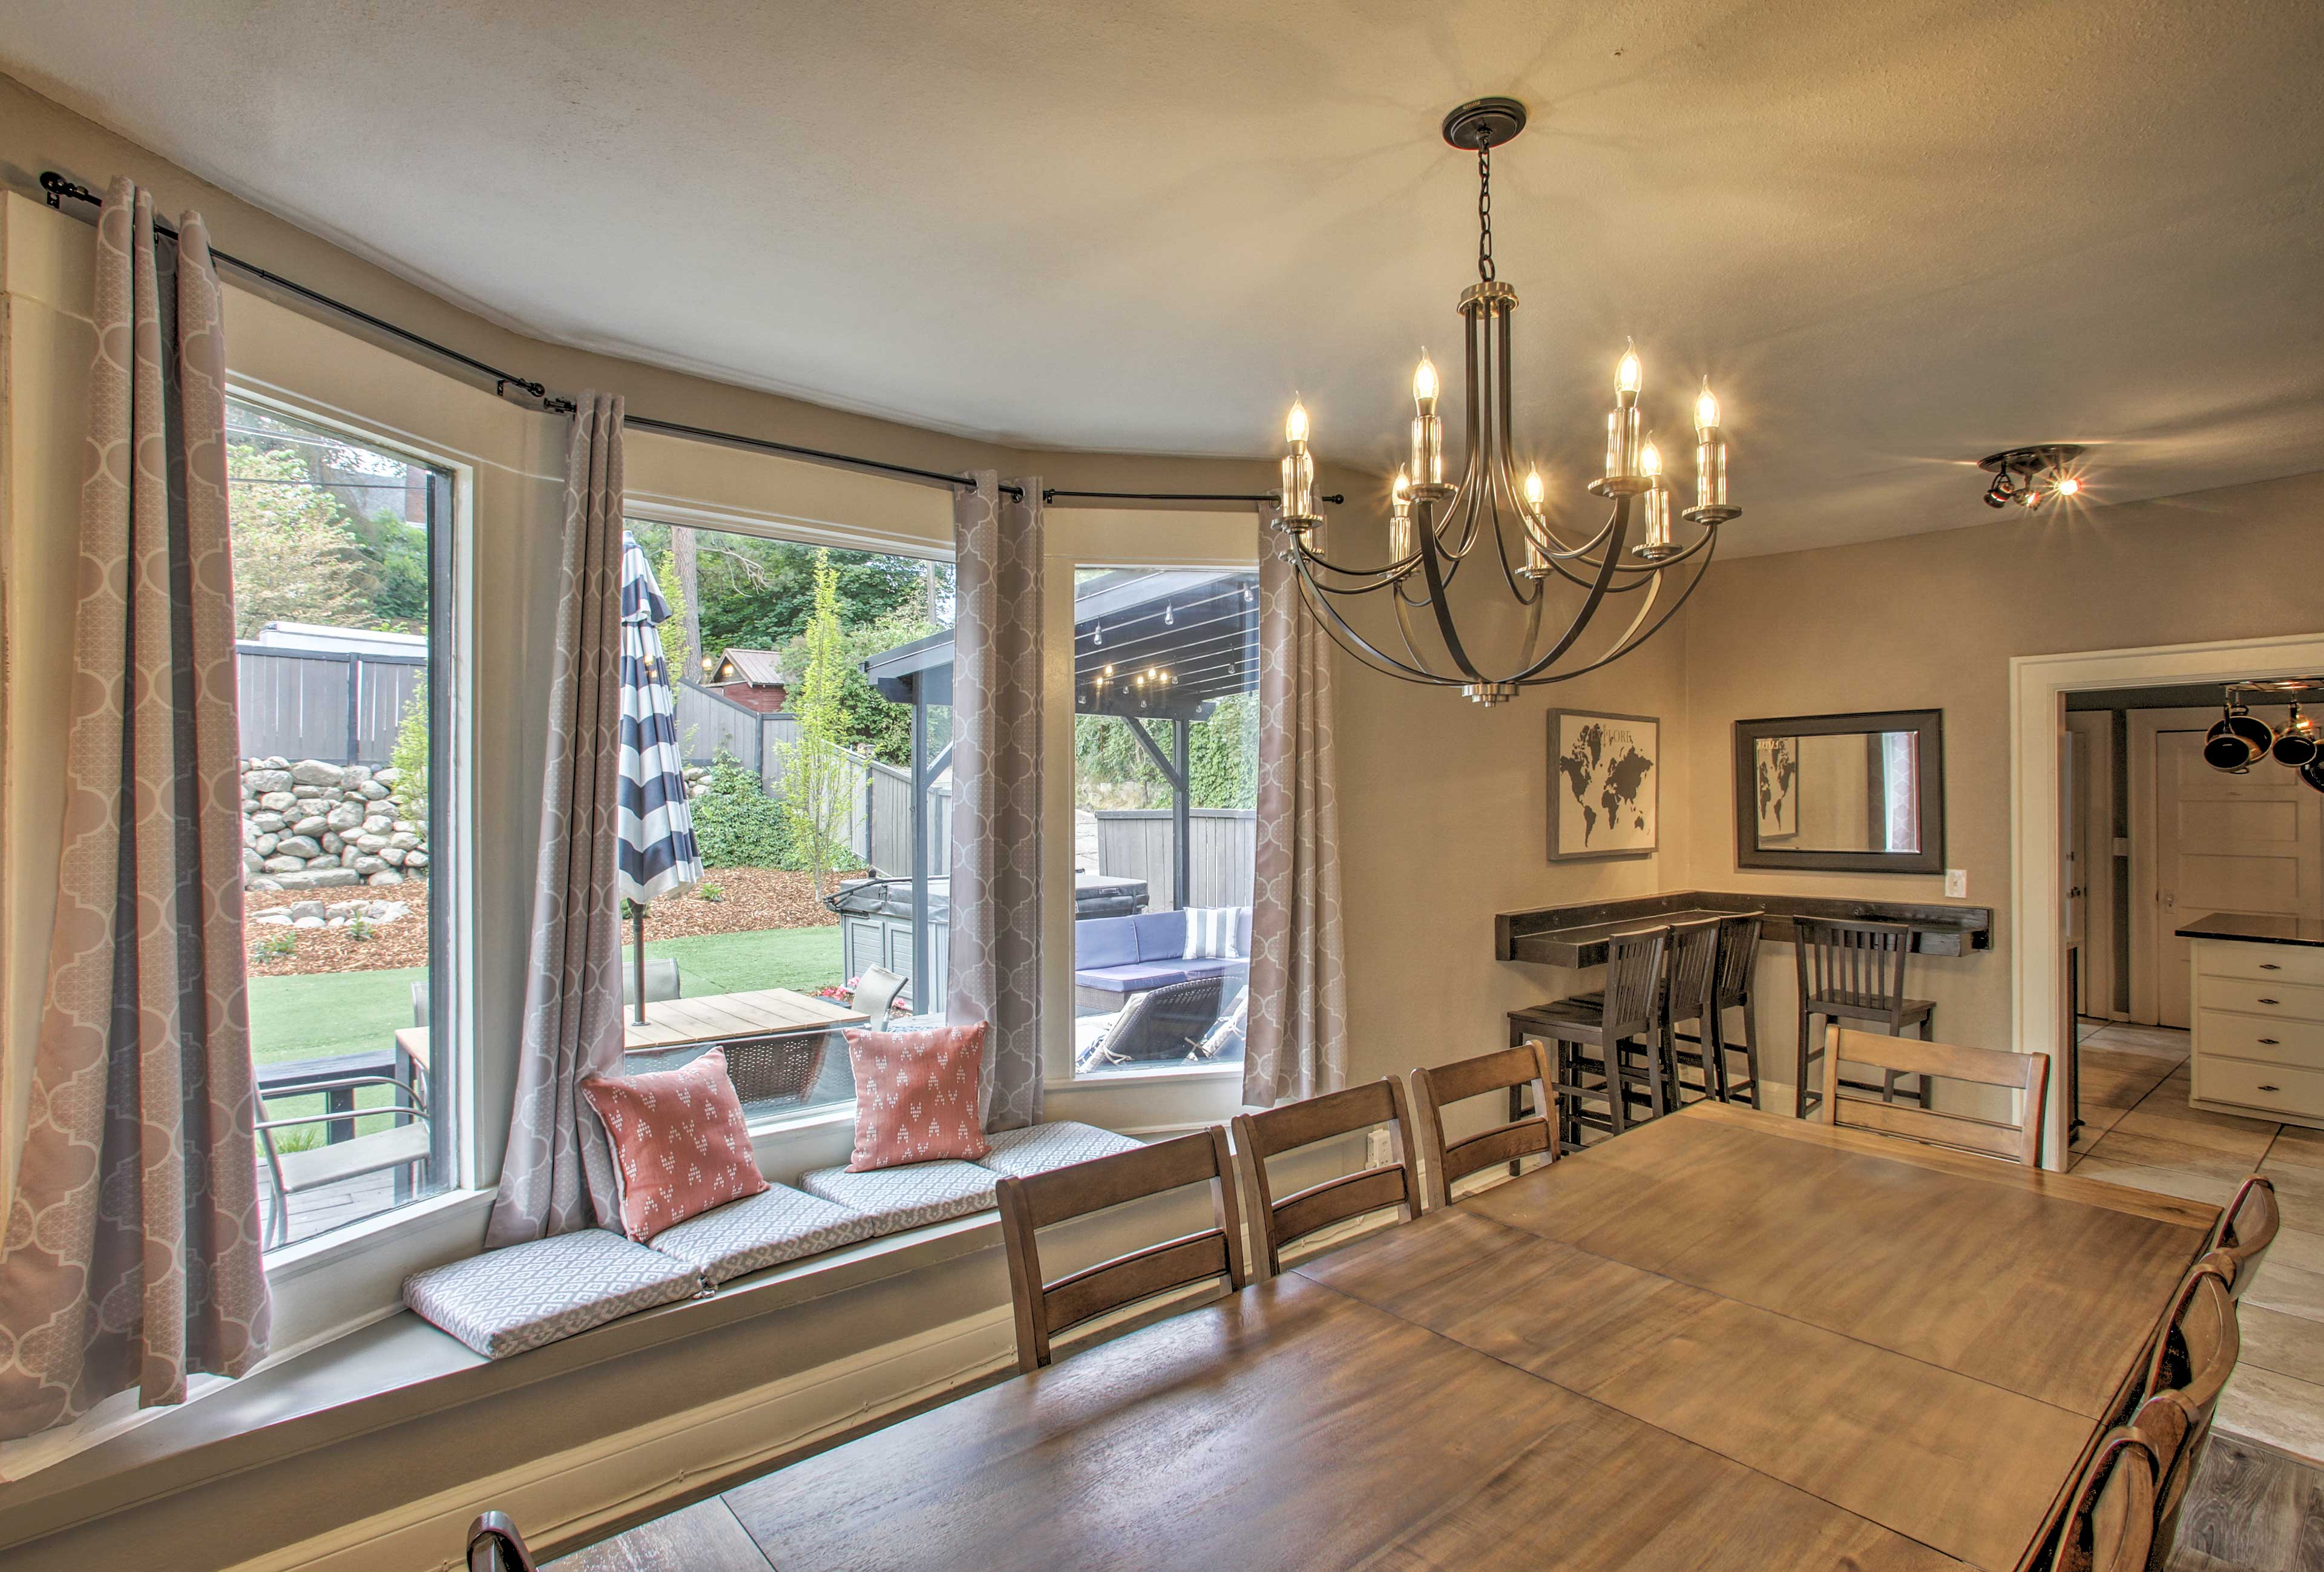 Large bay windows flood the room with natural light.